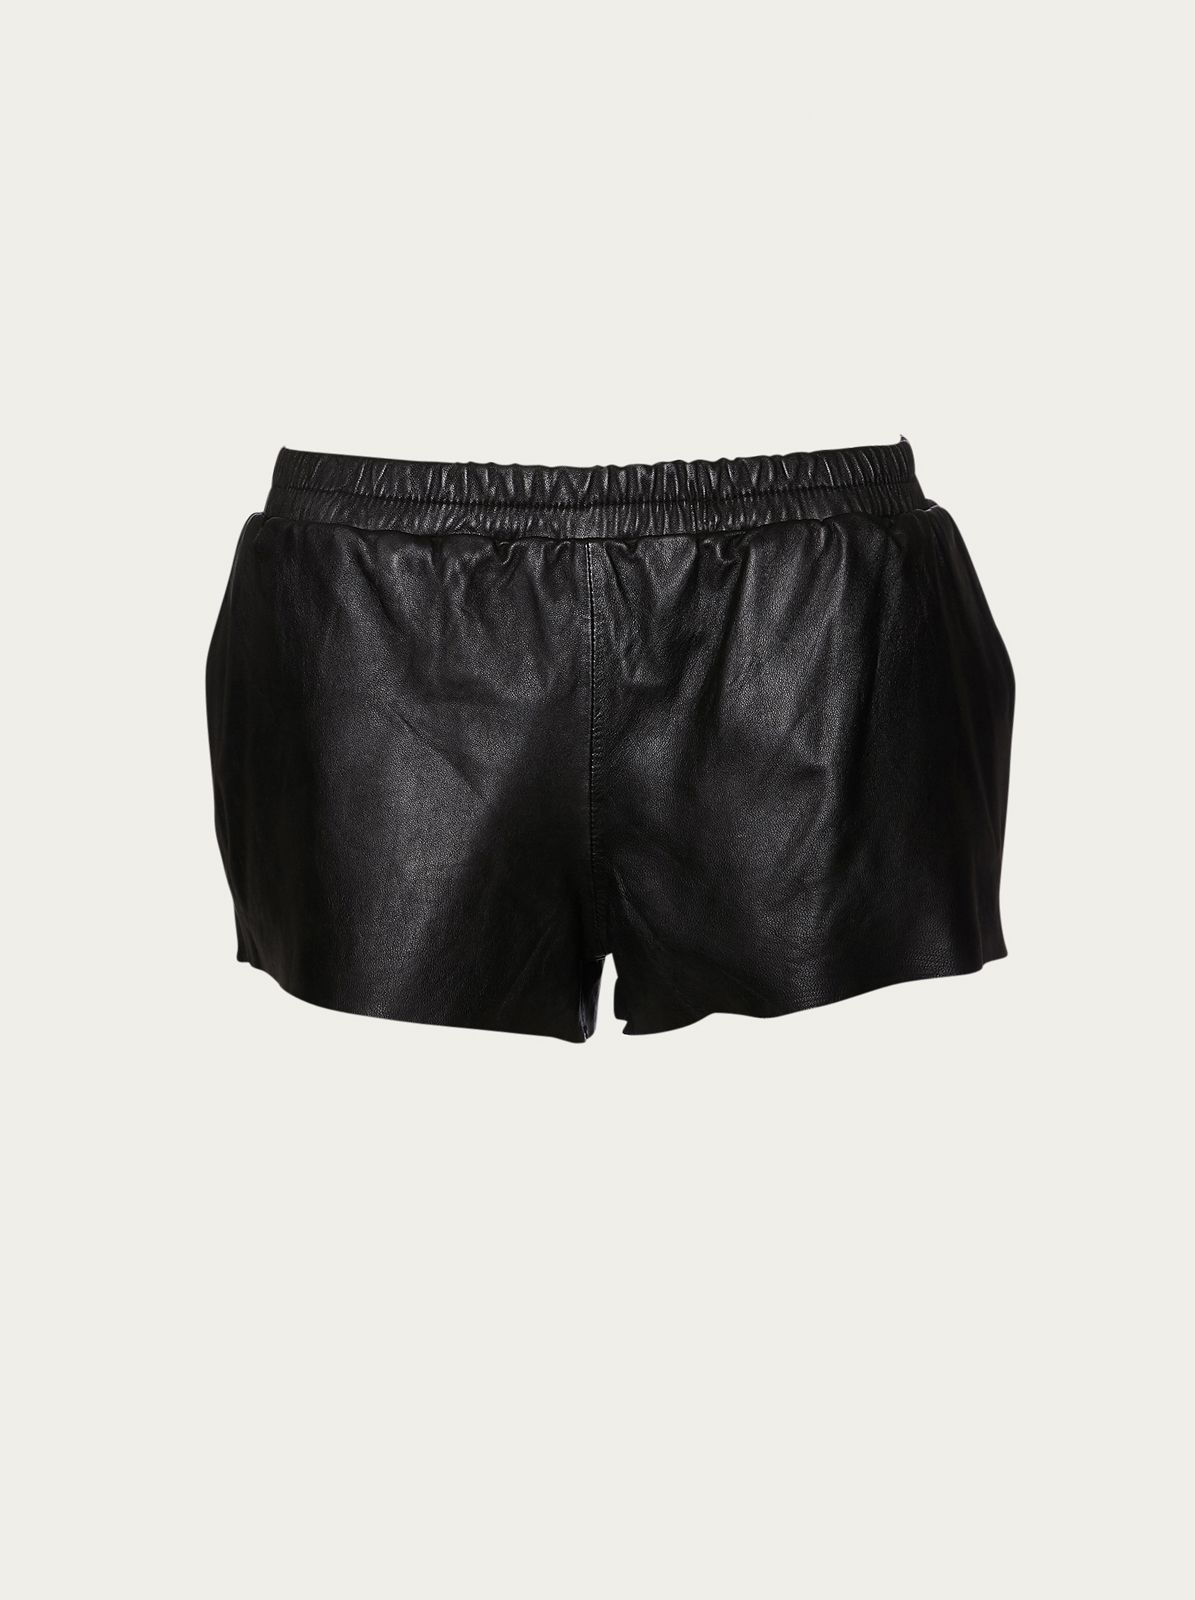 Fast Delivery Best Store To Get For Sale Shorts Fee black Tigha Explore QAGOi1ObJL